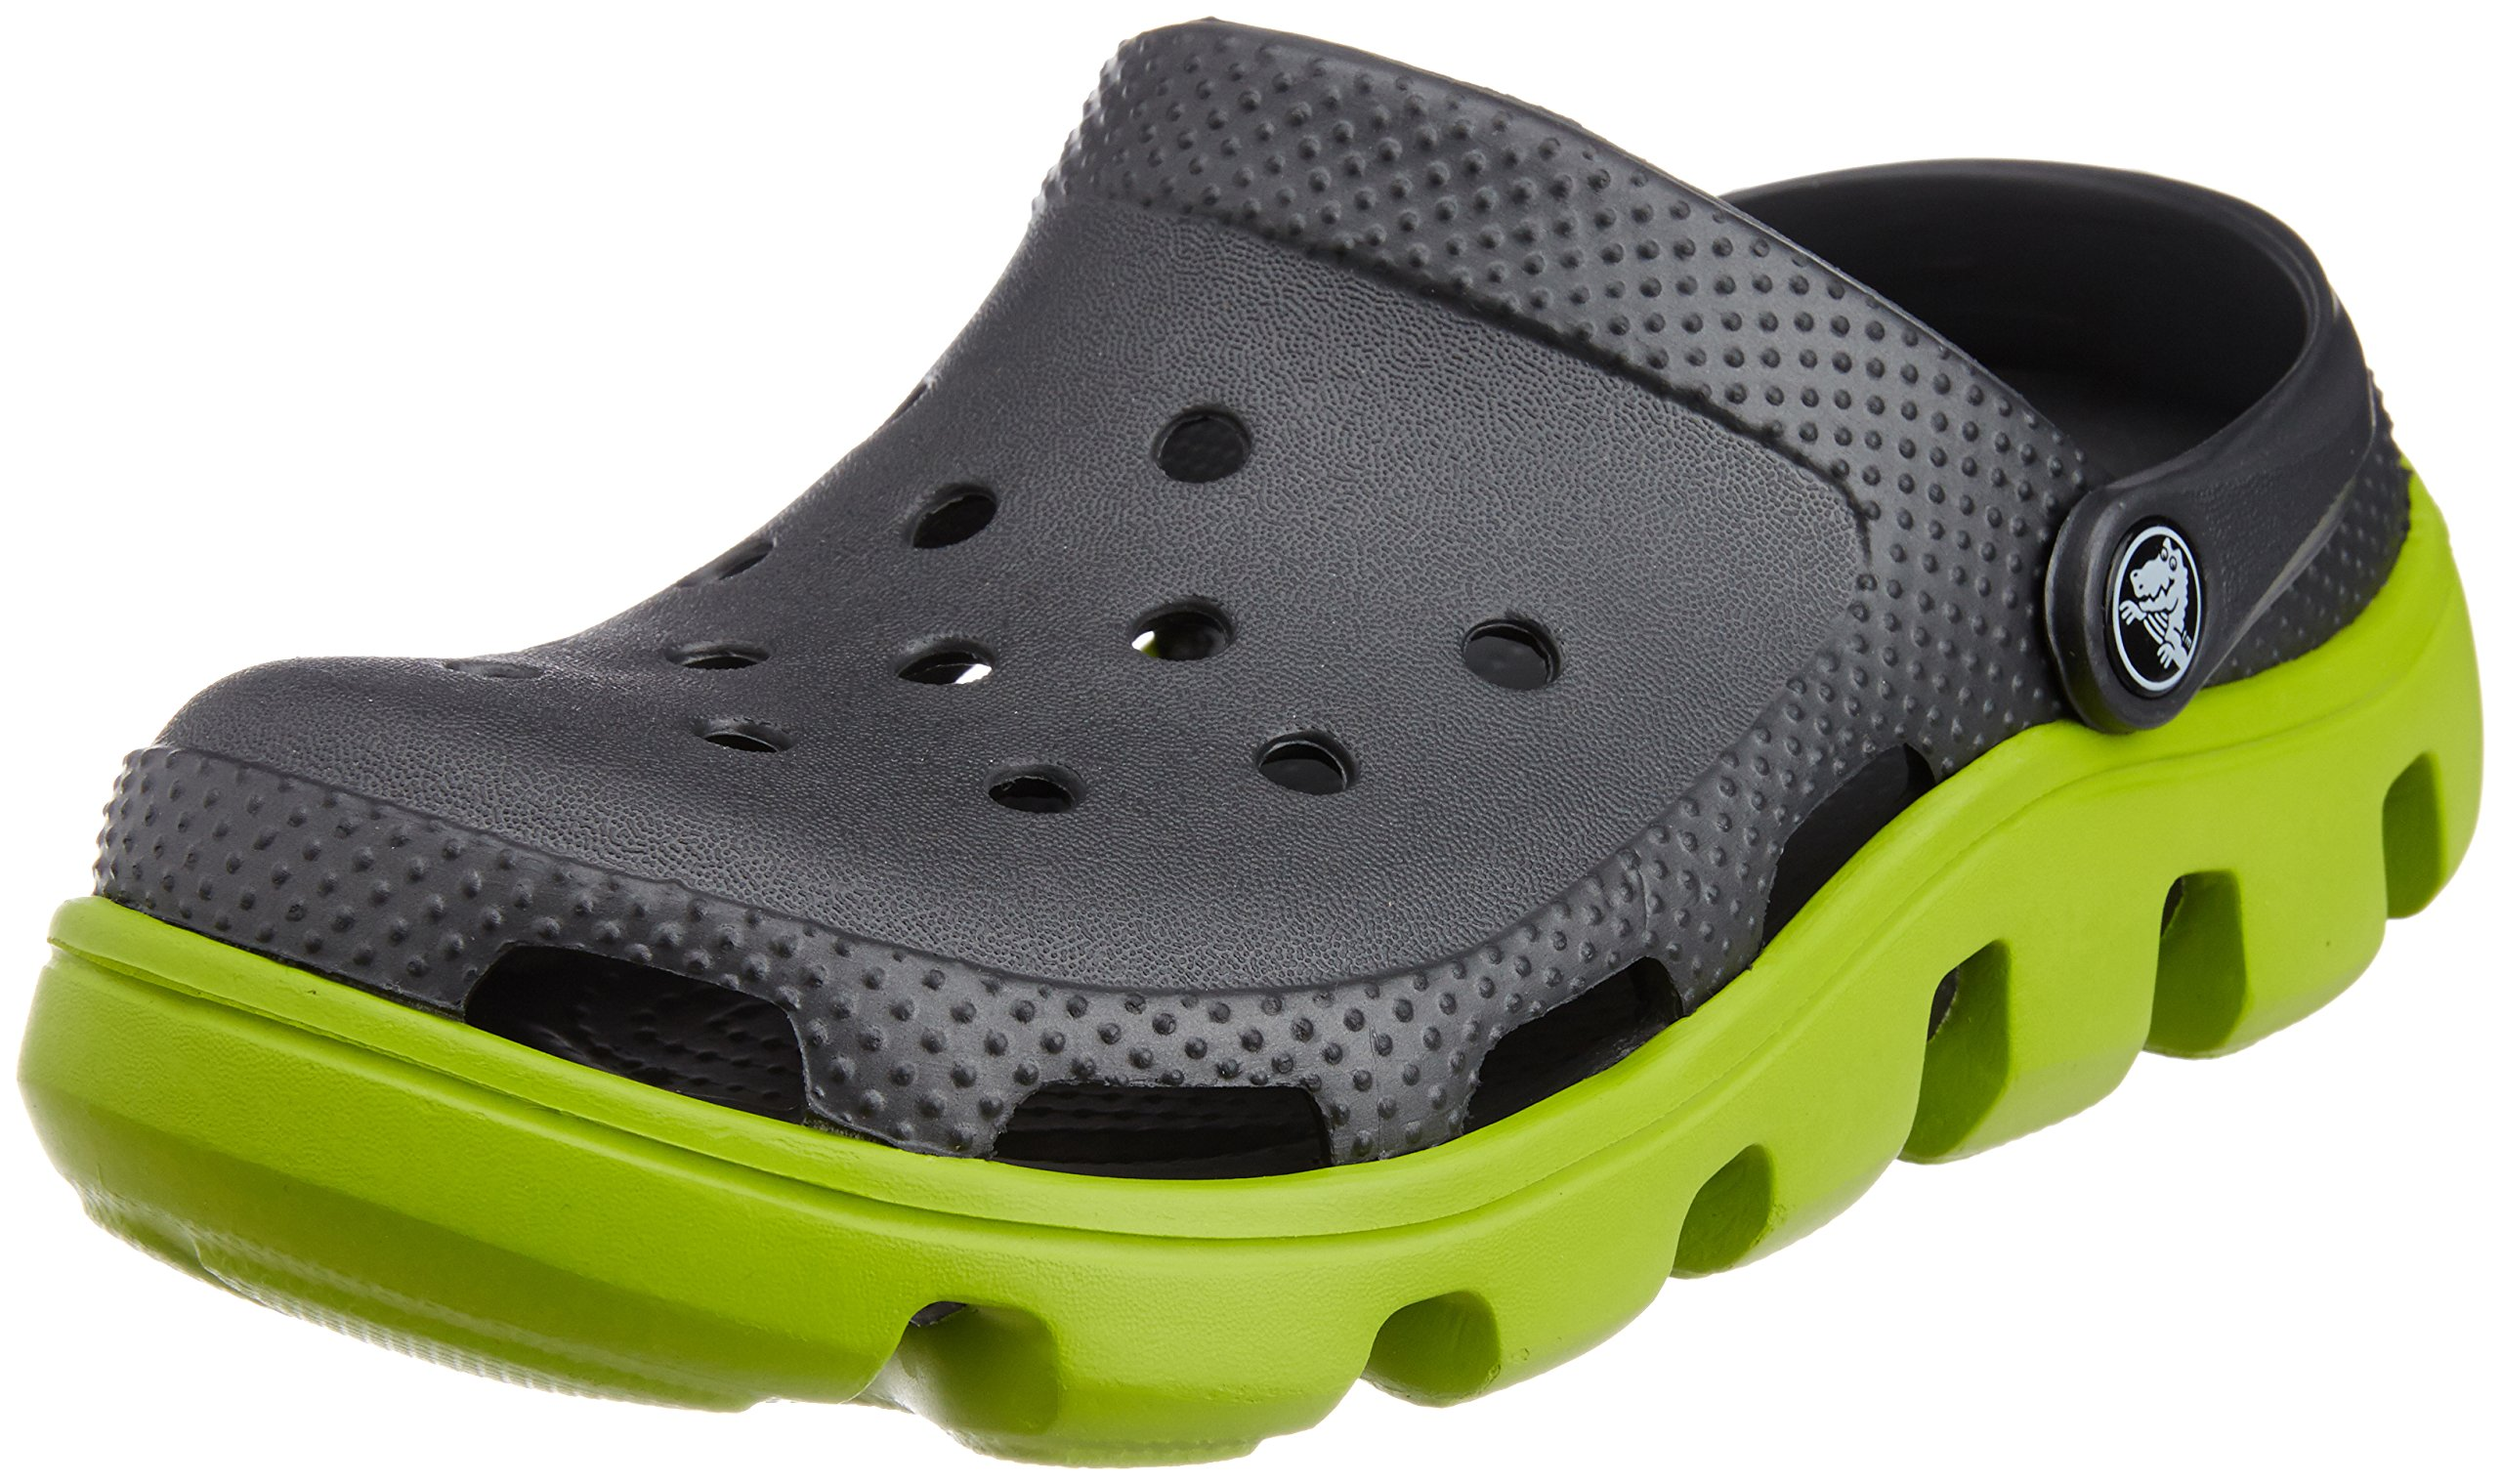 8e80340c7 crocs Unisex Black and Green Rubber Clogs and Mules product image